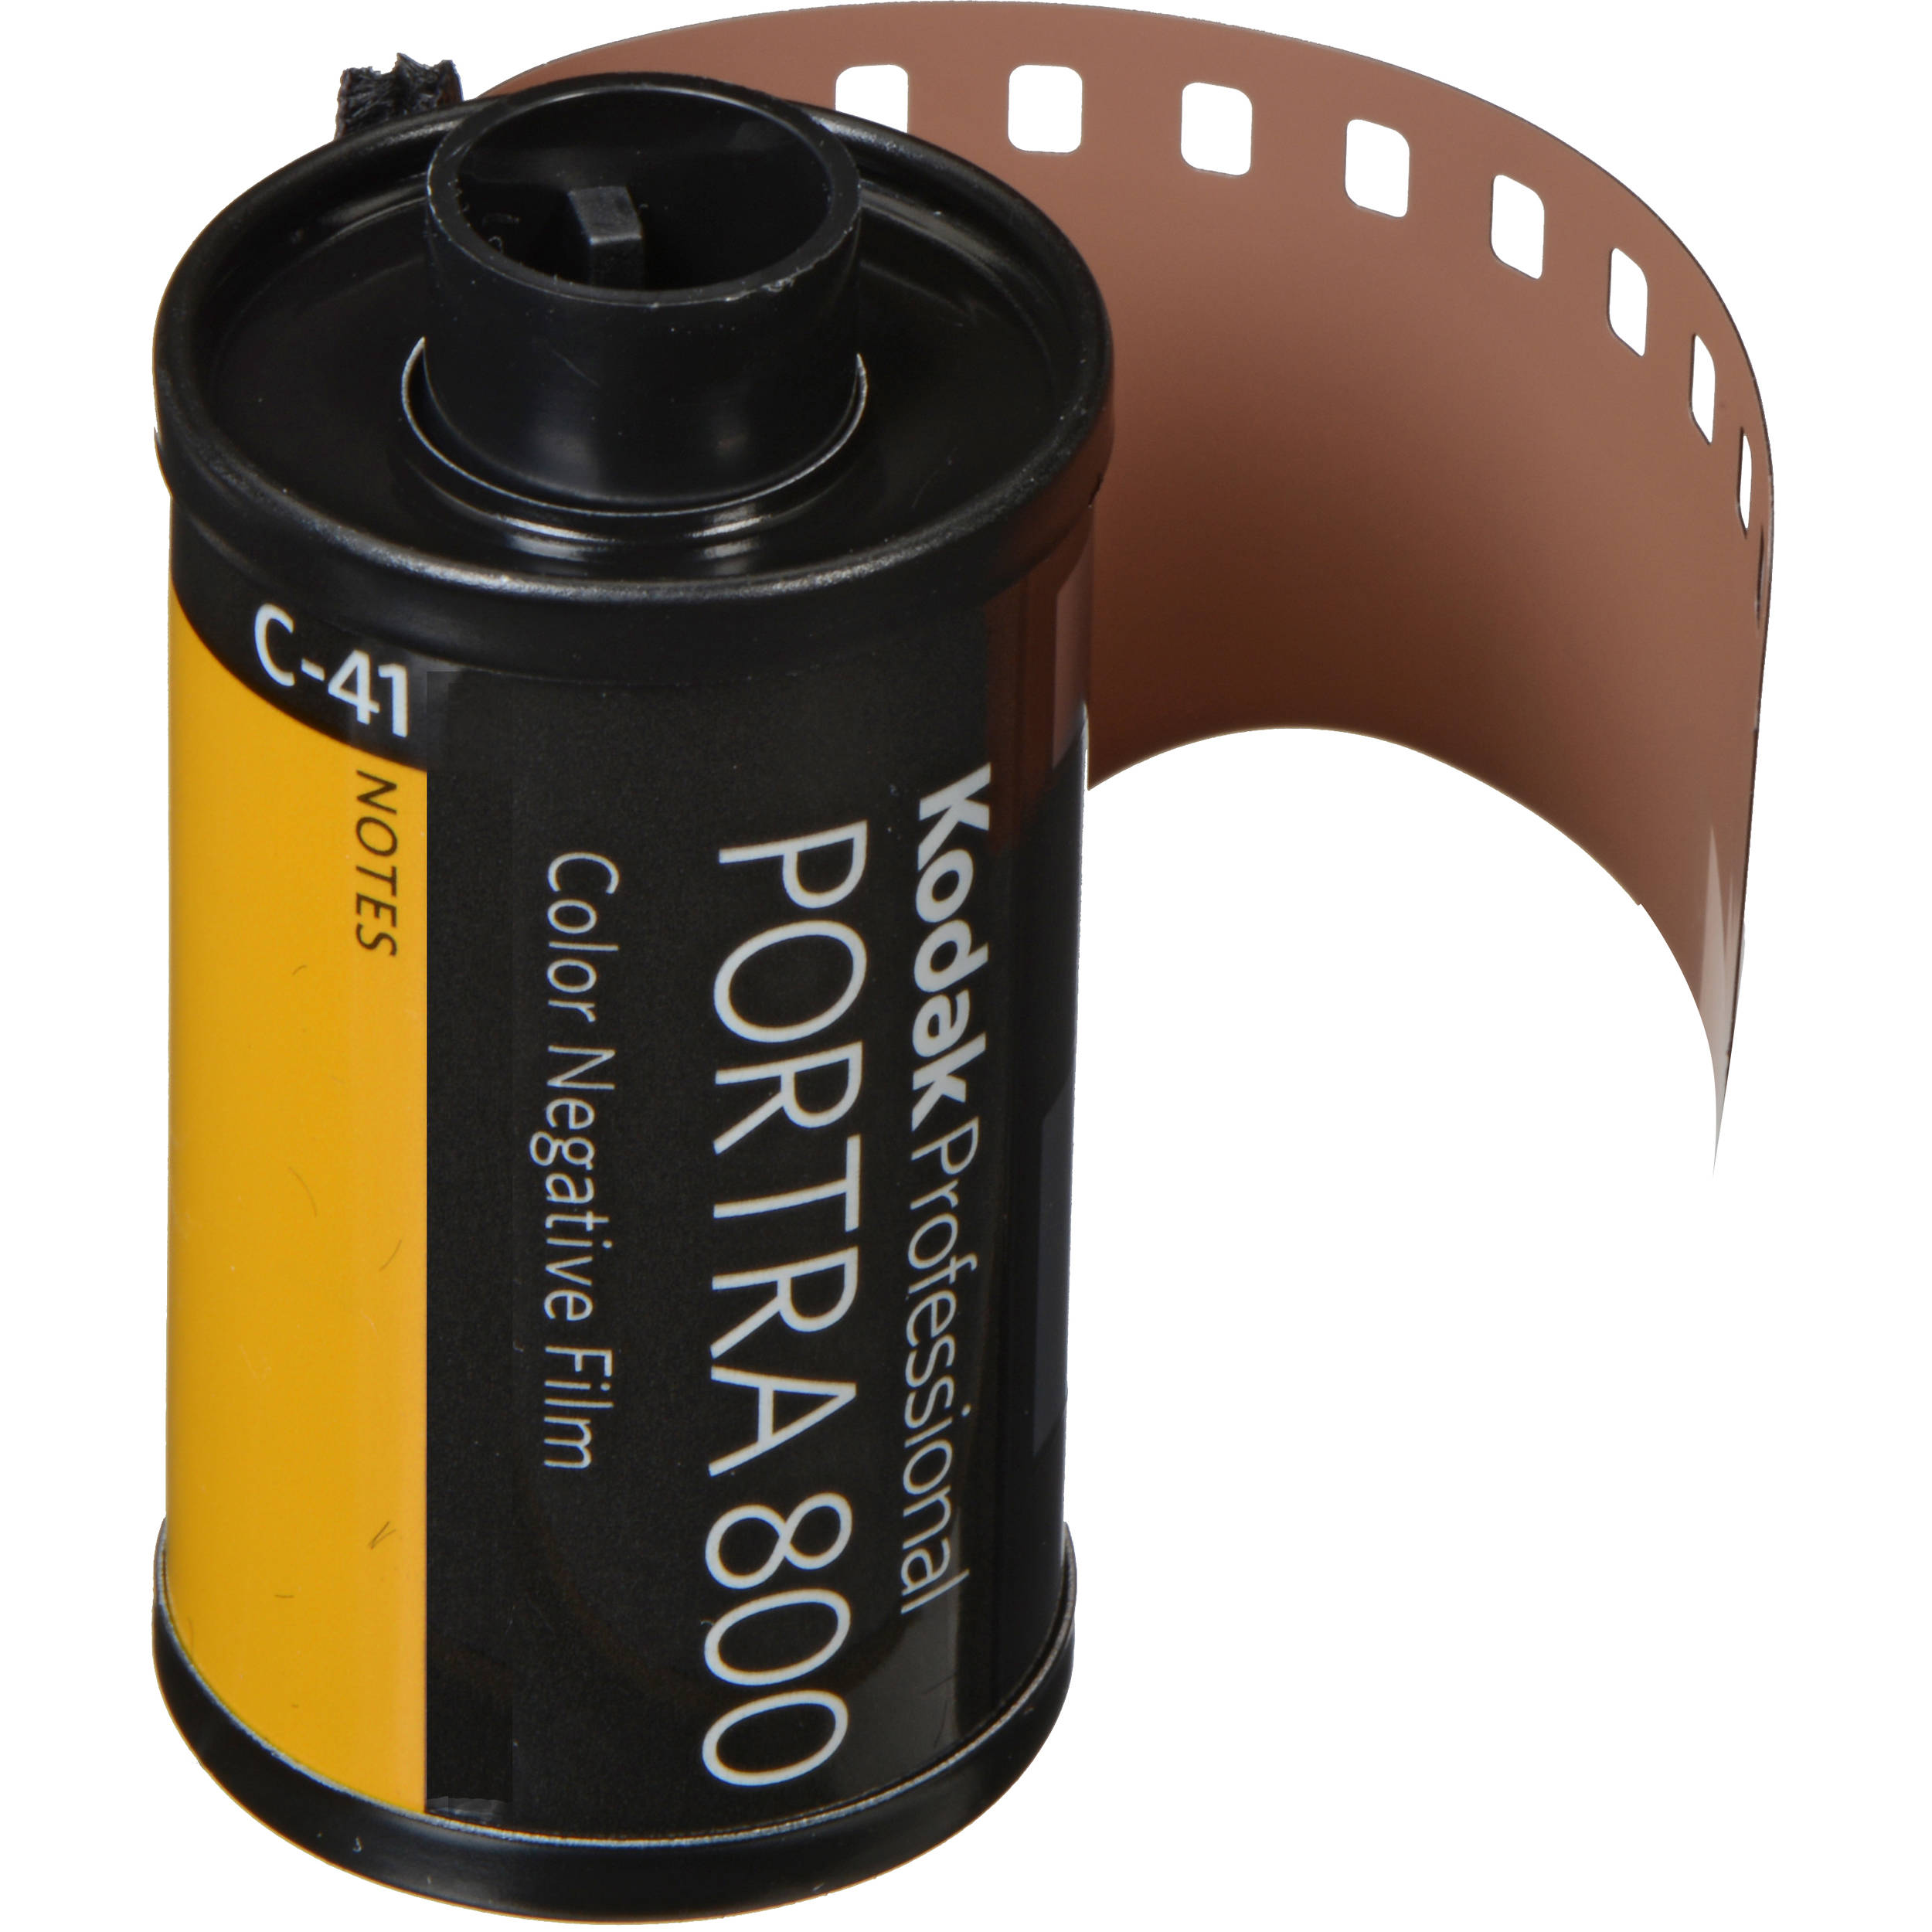 Kodak Professional Portra 800 Color Negative Film 1451855 B&H